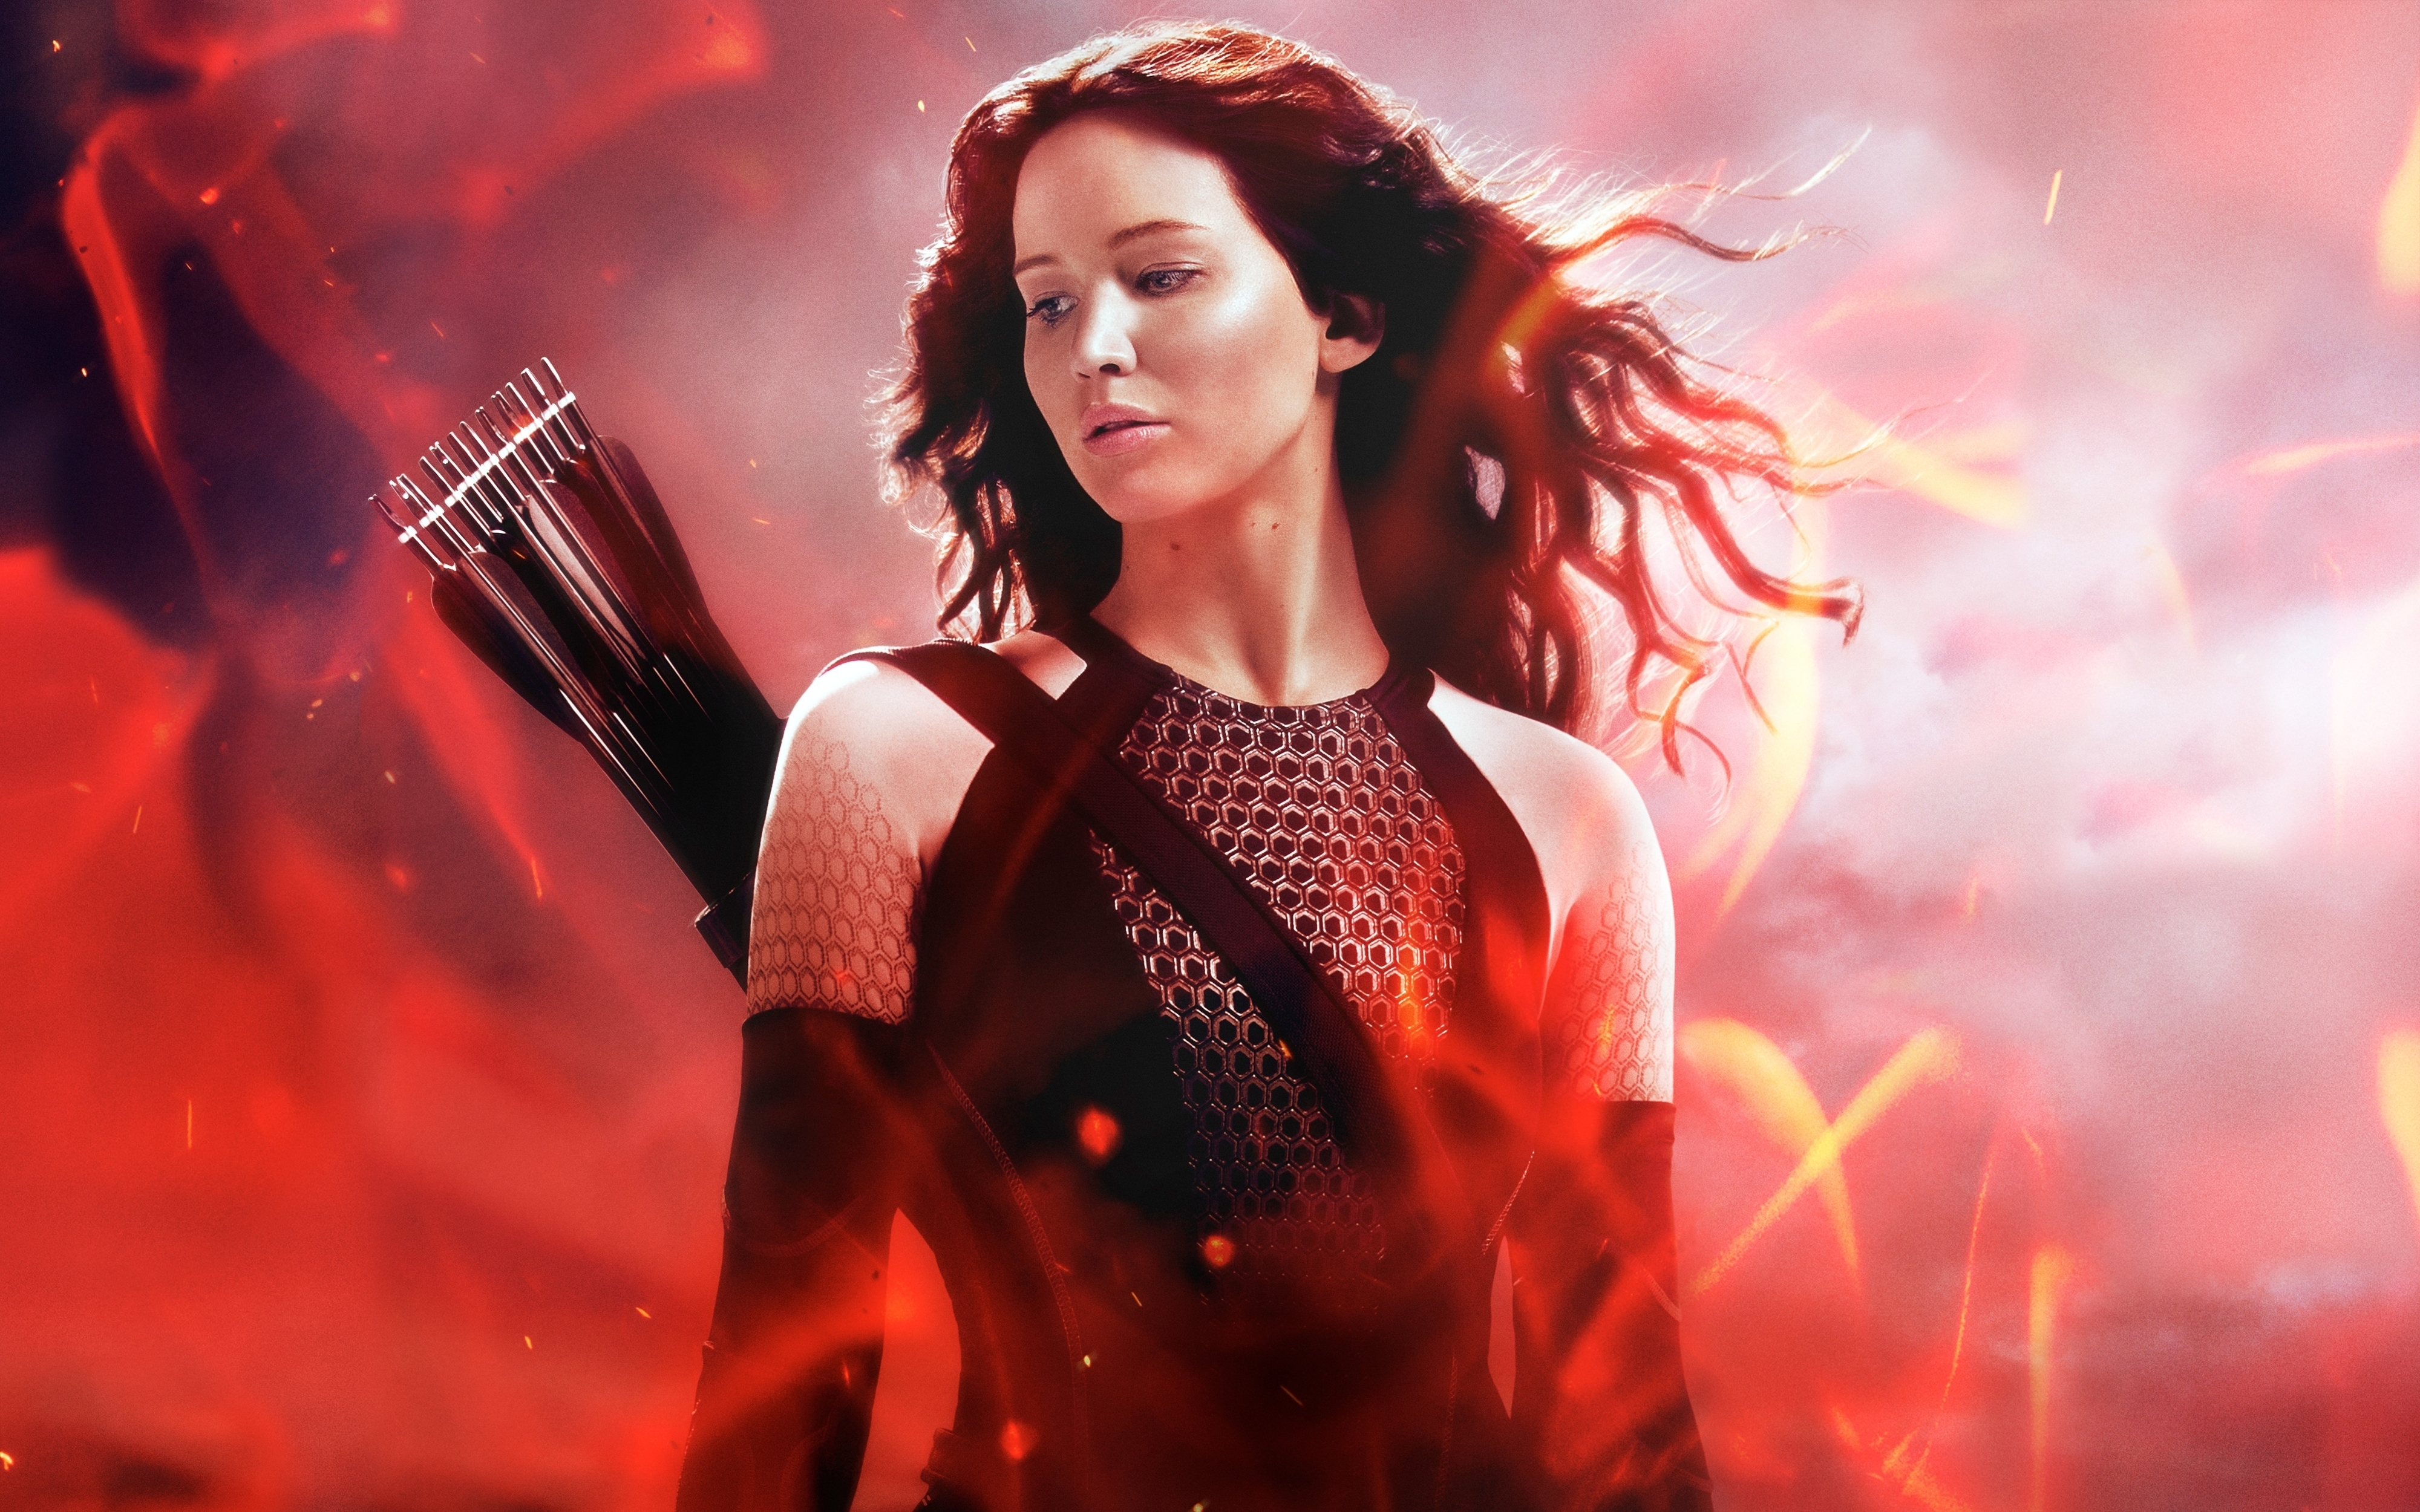 Katniss in The Hunger Games Catching Fire 4K wallpaper 4000x2500